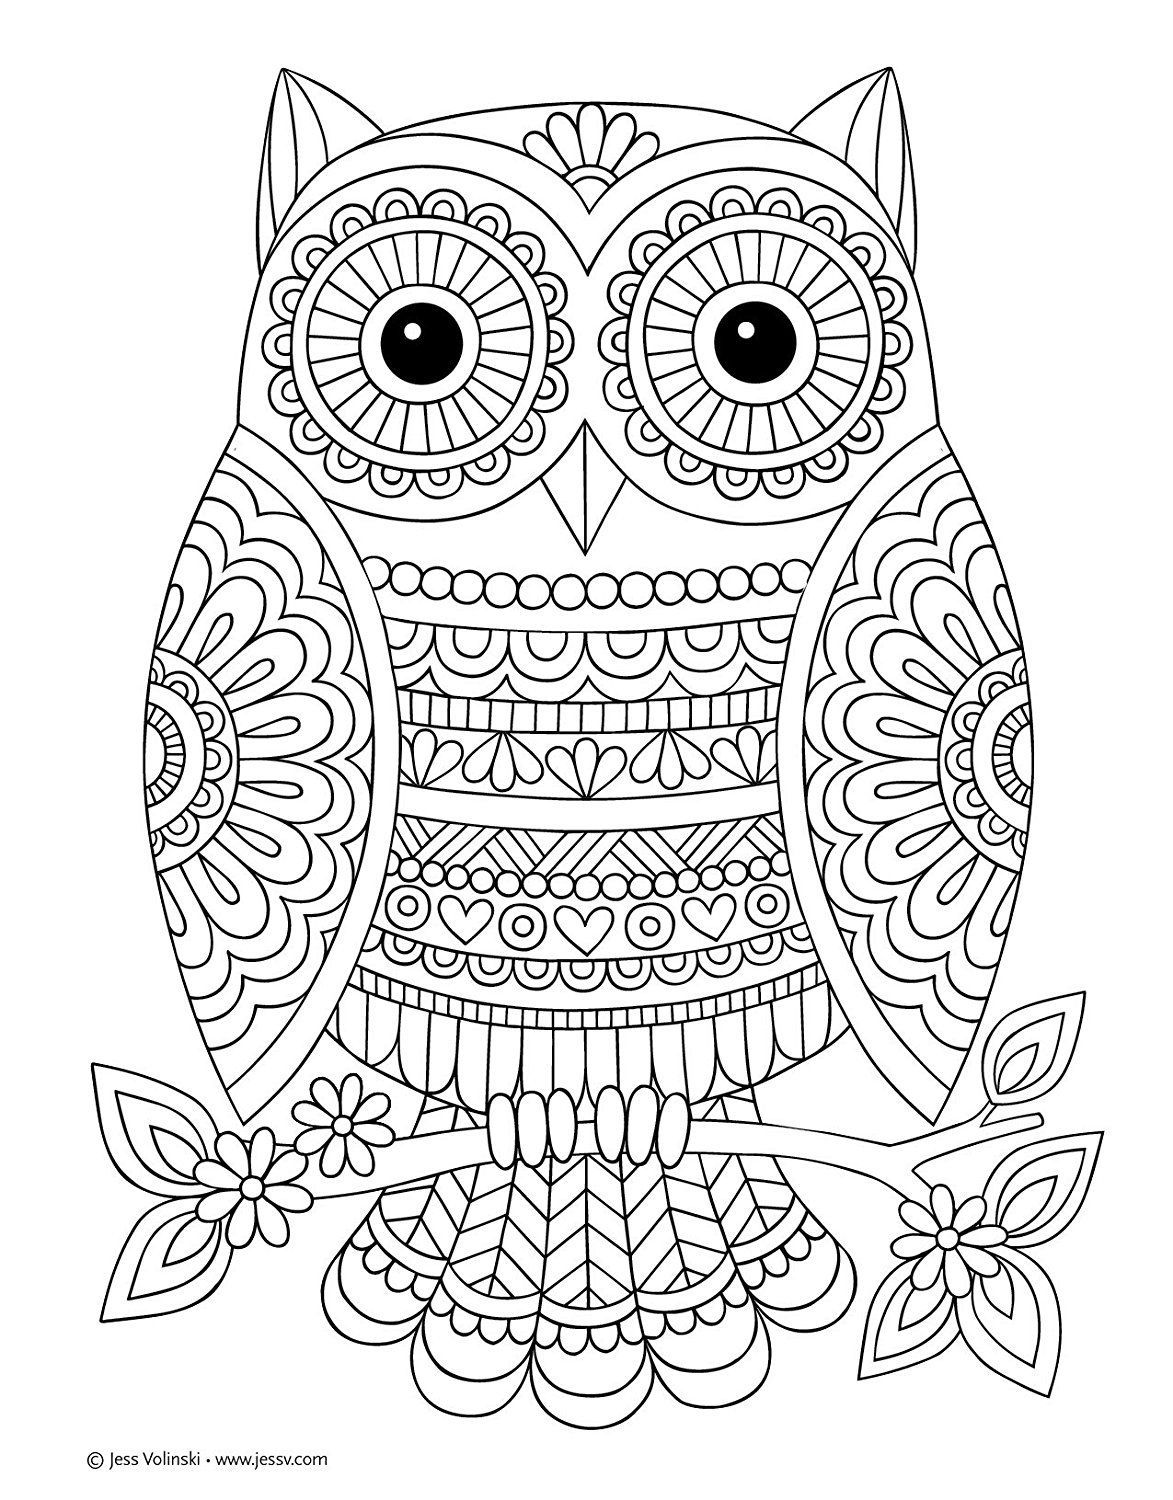 Owl Coloring Pages Color Activities Coloring Pictures Mandala Coloring Pages Mandala Coloring Owl Coloring Pages Cute Coloring Pages Mandala Coloring Pages